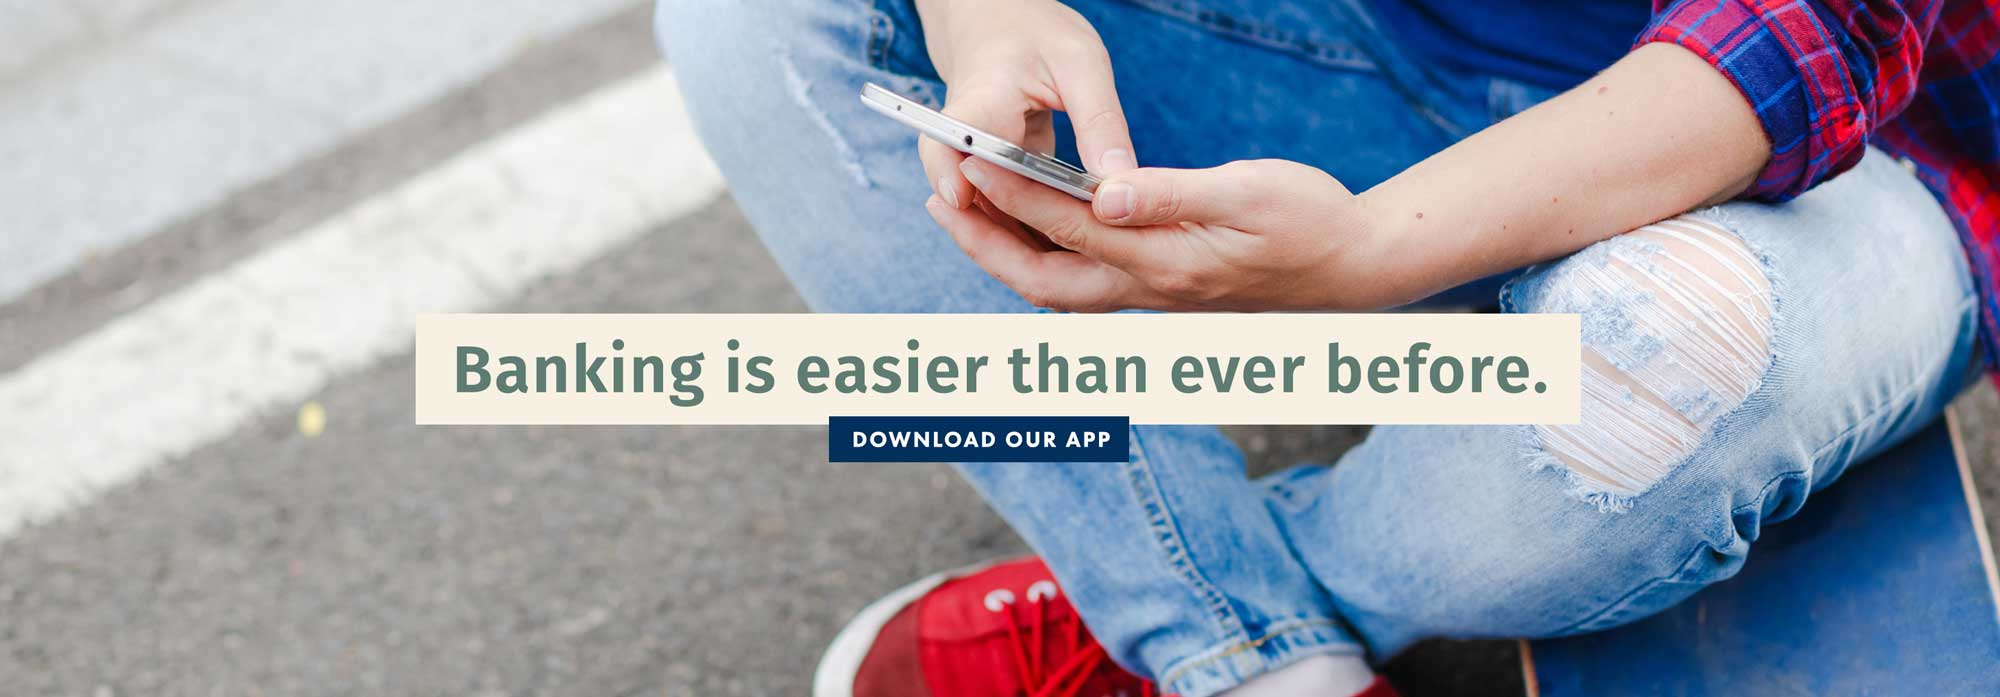 Banking is easier than ever before. Download our app.